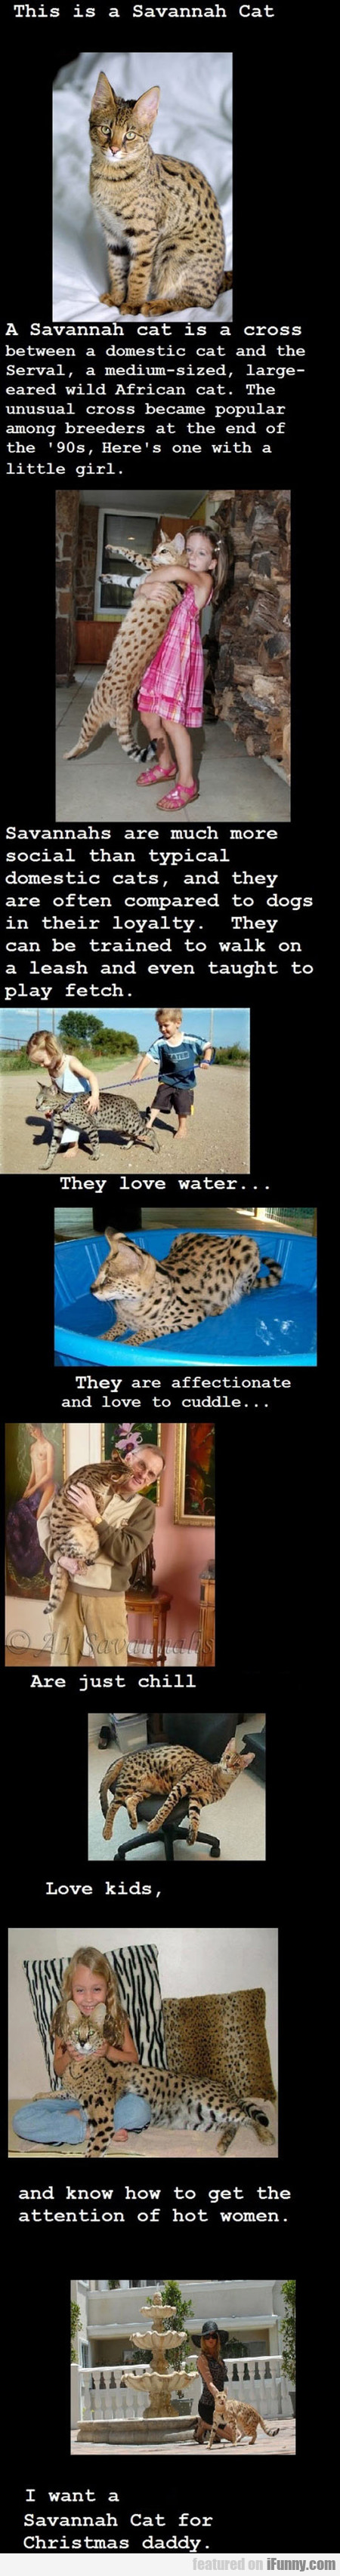 I Want A Savannah Cat Right Now